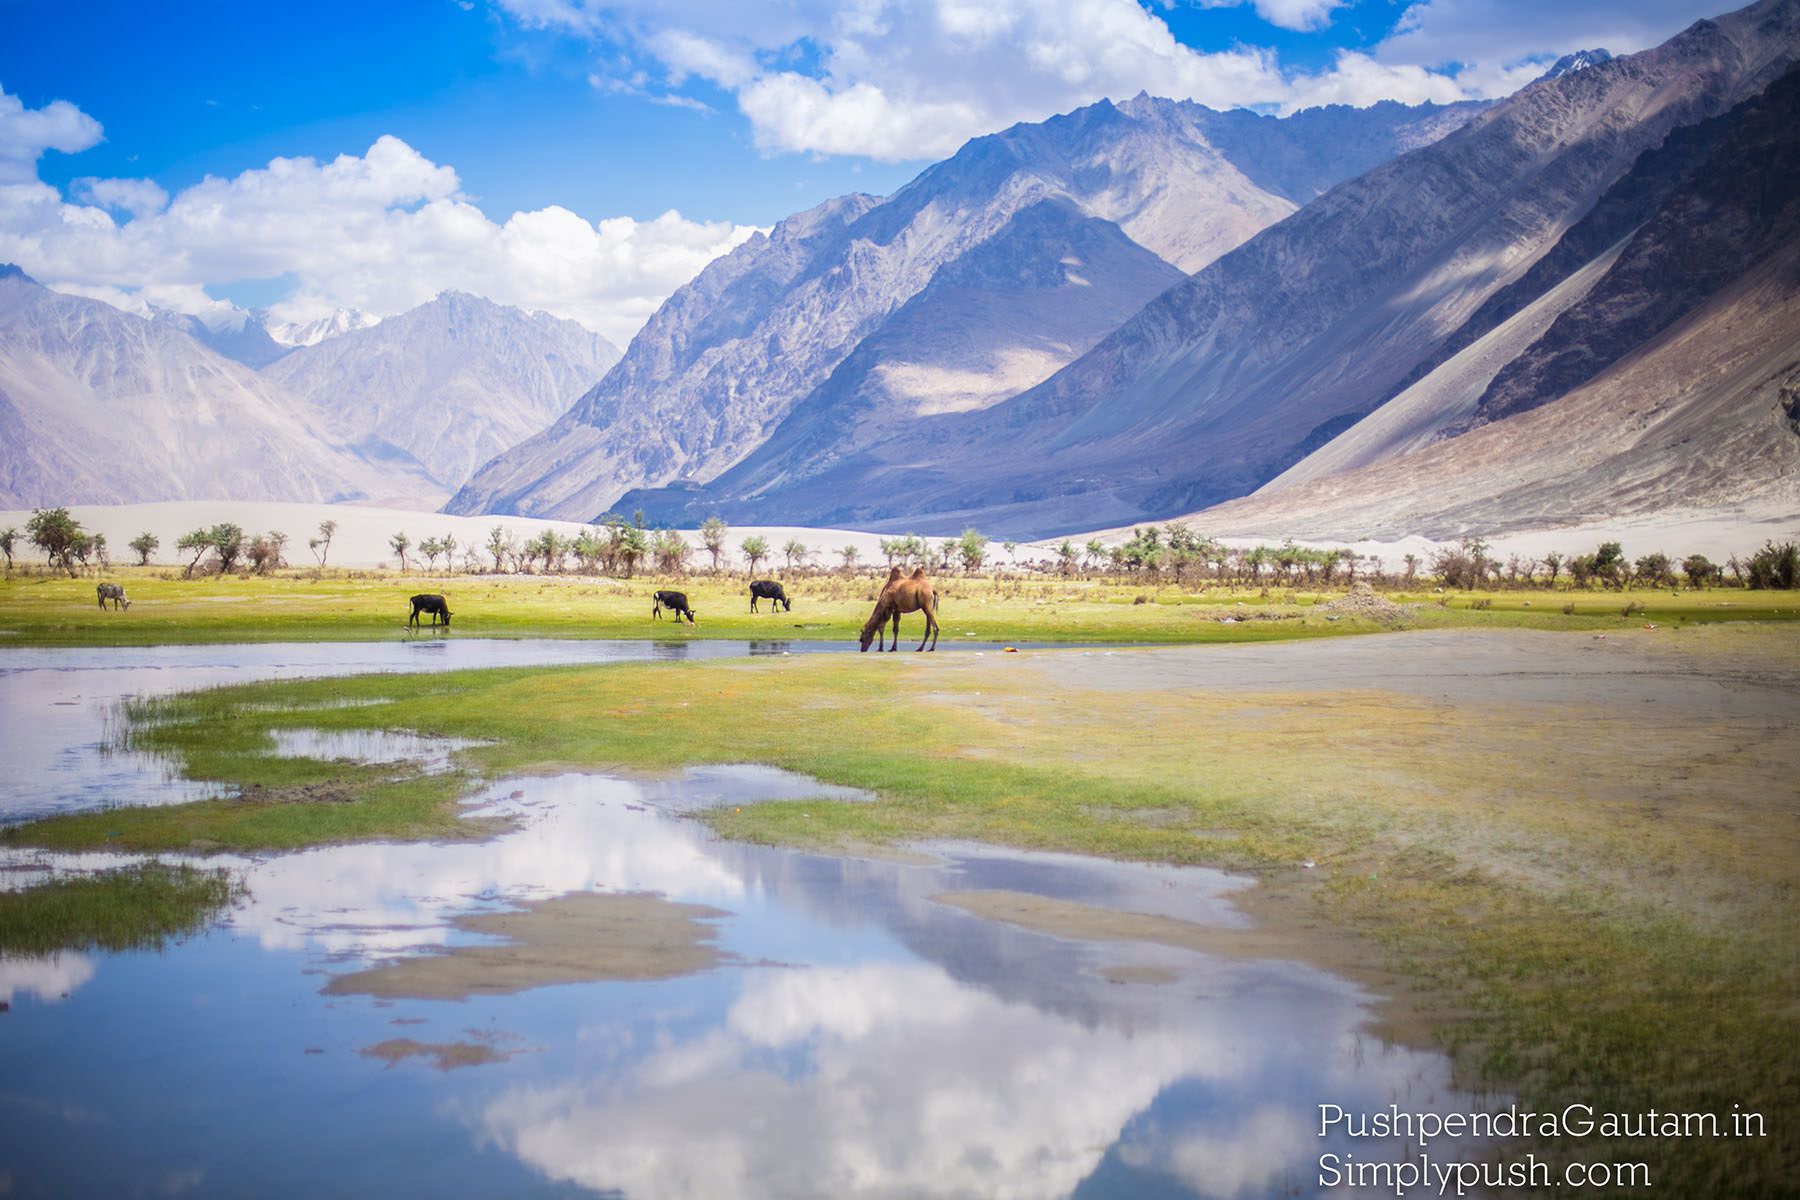 mountains-nubra-valley-pics-best-travel-photographer-india-pushpendragautam-pics-event-photographer-india